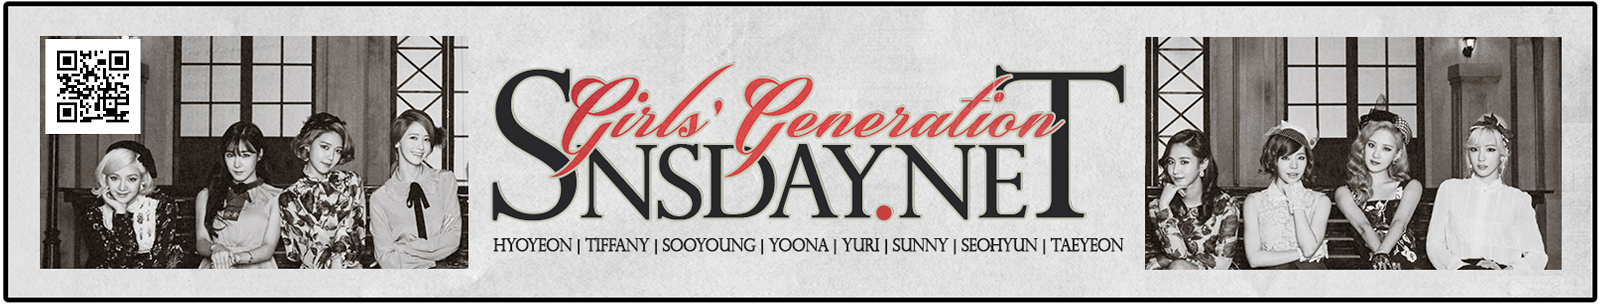 snsday | Girls' Generation day